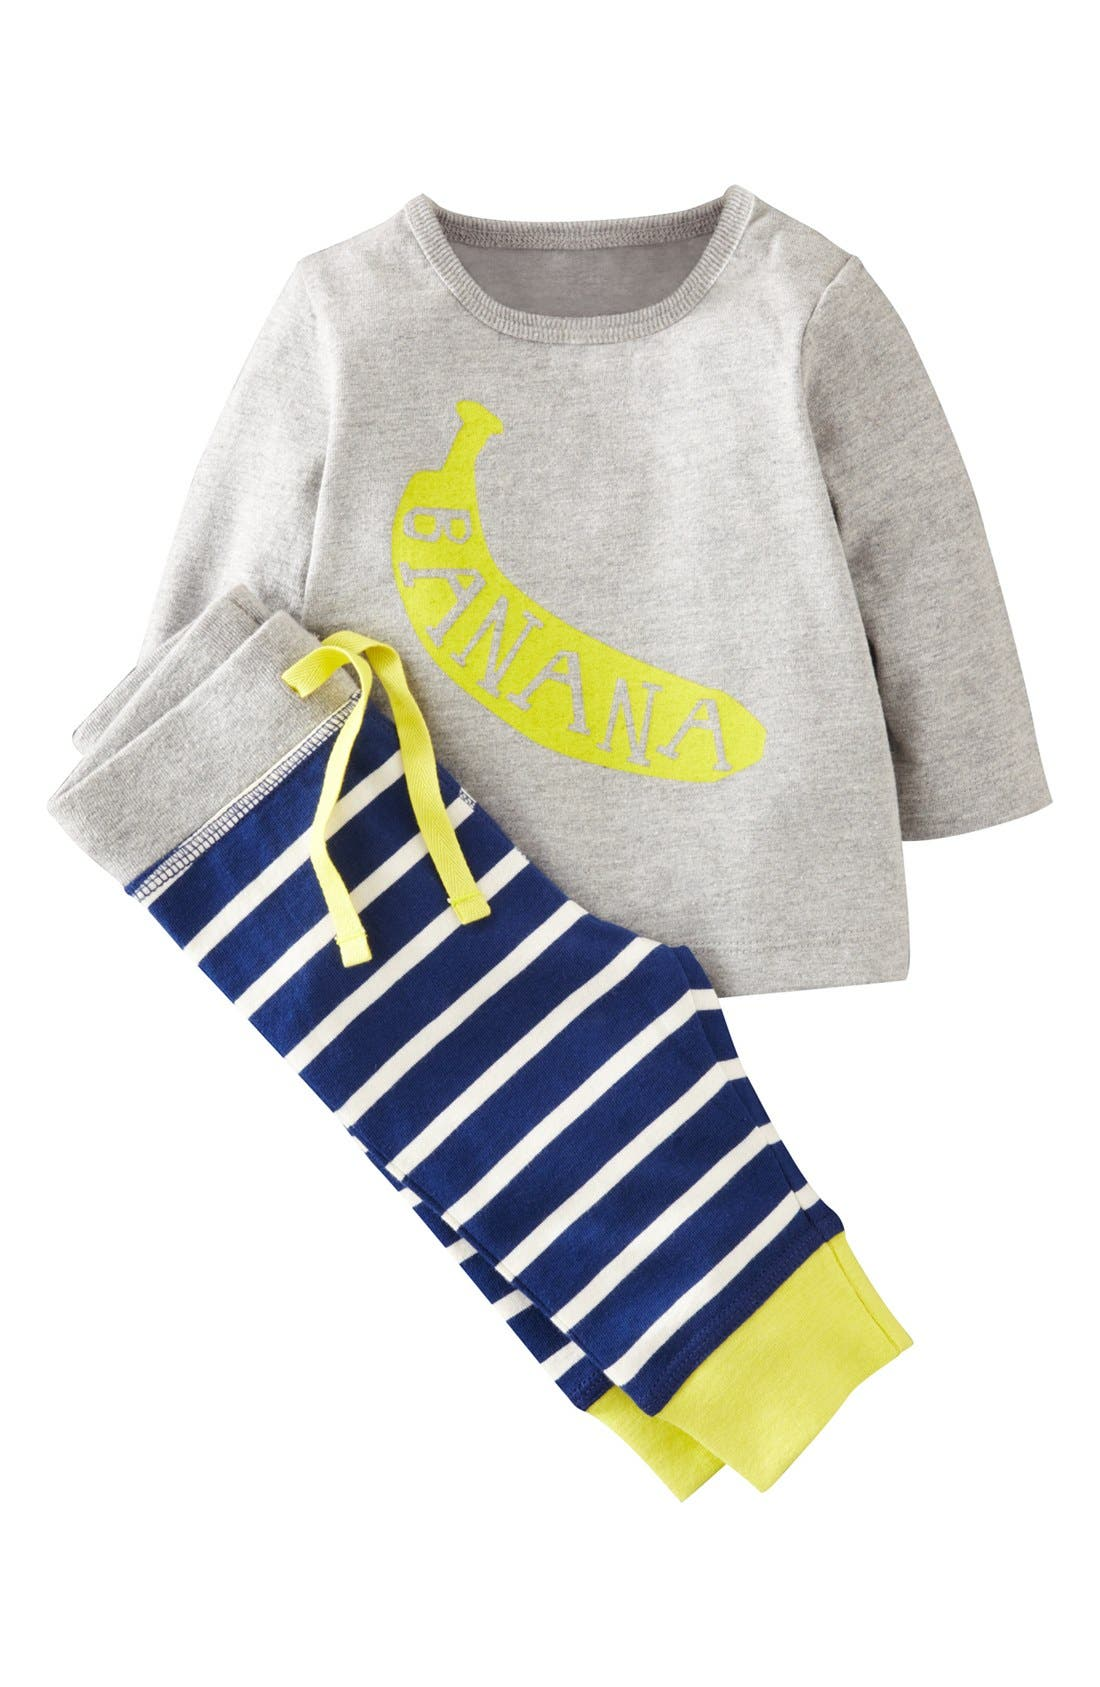 Main Image - Mini Boden Shirt & Leggings (Baby Boys)